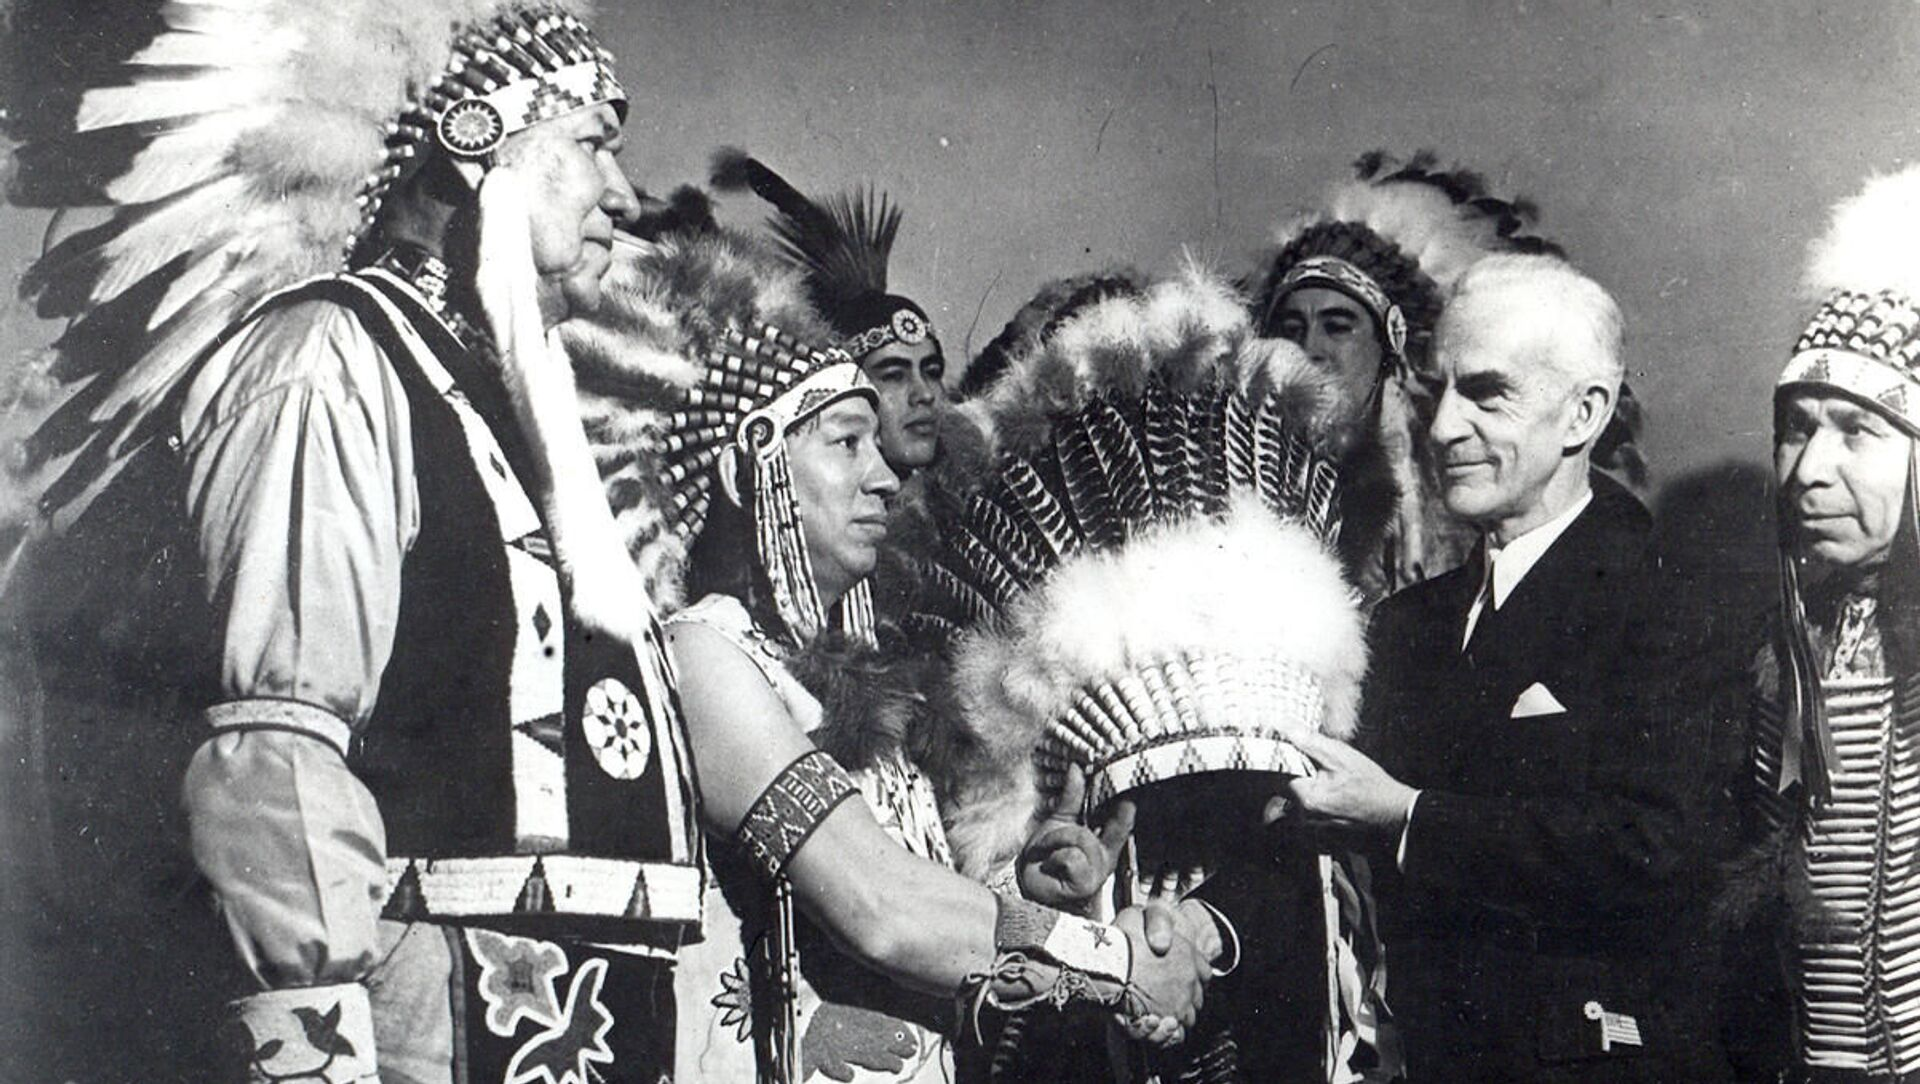 Ceremony of transfer of headgear of honorary Indian chief in New York, 1942 - Sputnik Italia, 1920, 18.02.2021